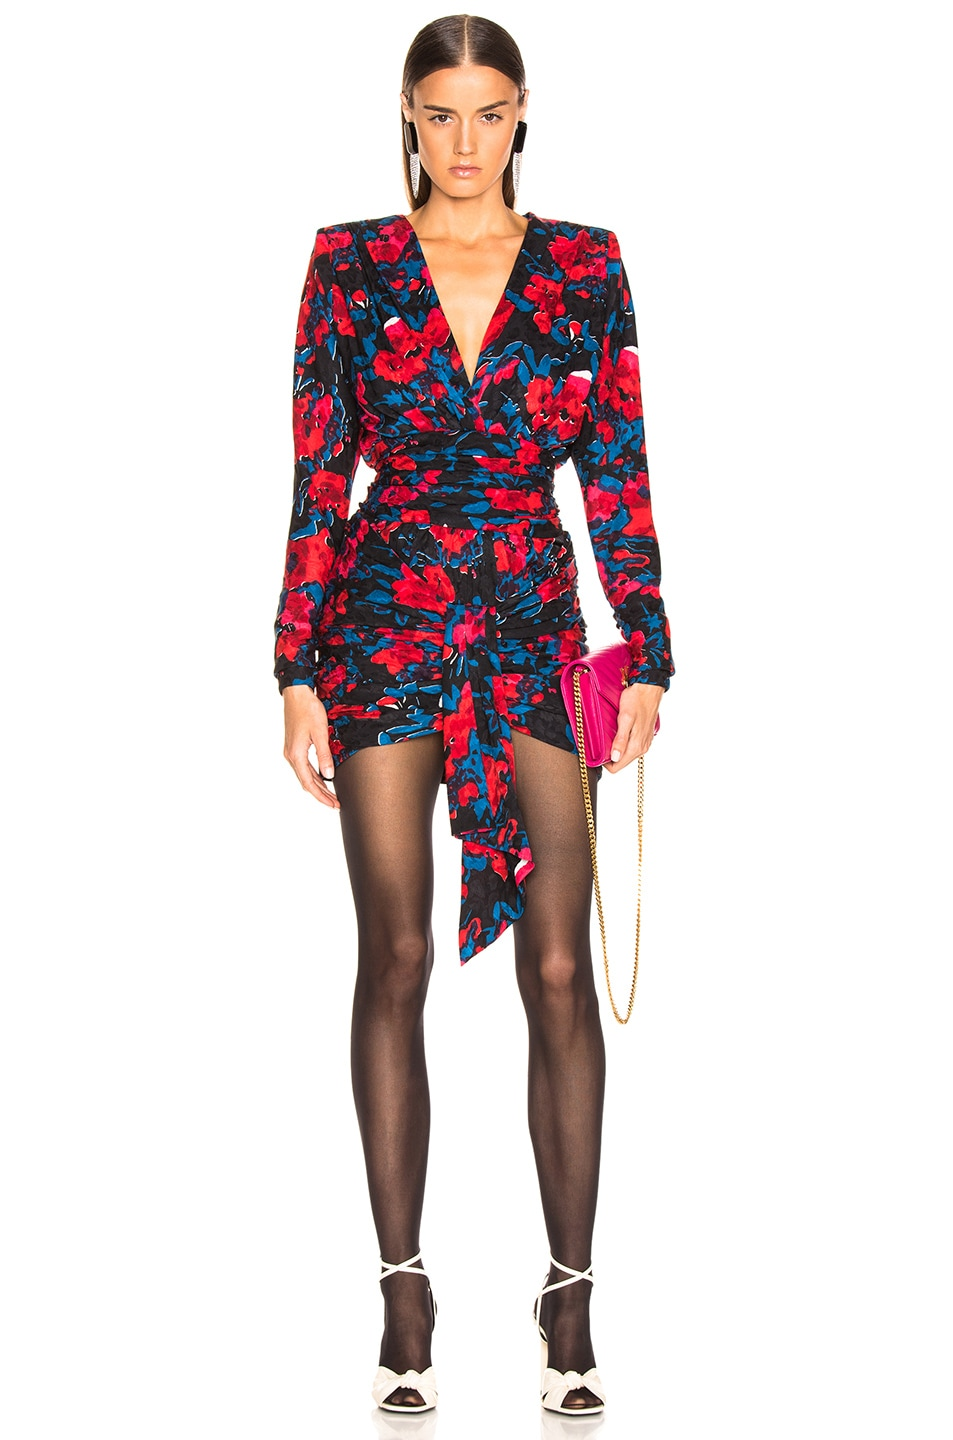 Image 1 of Saint Laurent Floral Draped Plunging Mini Dress in Black, Red & Blue